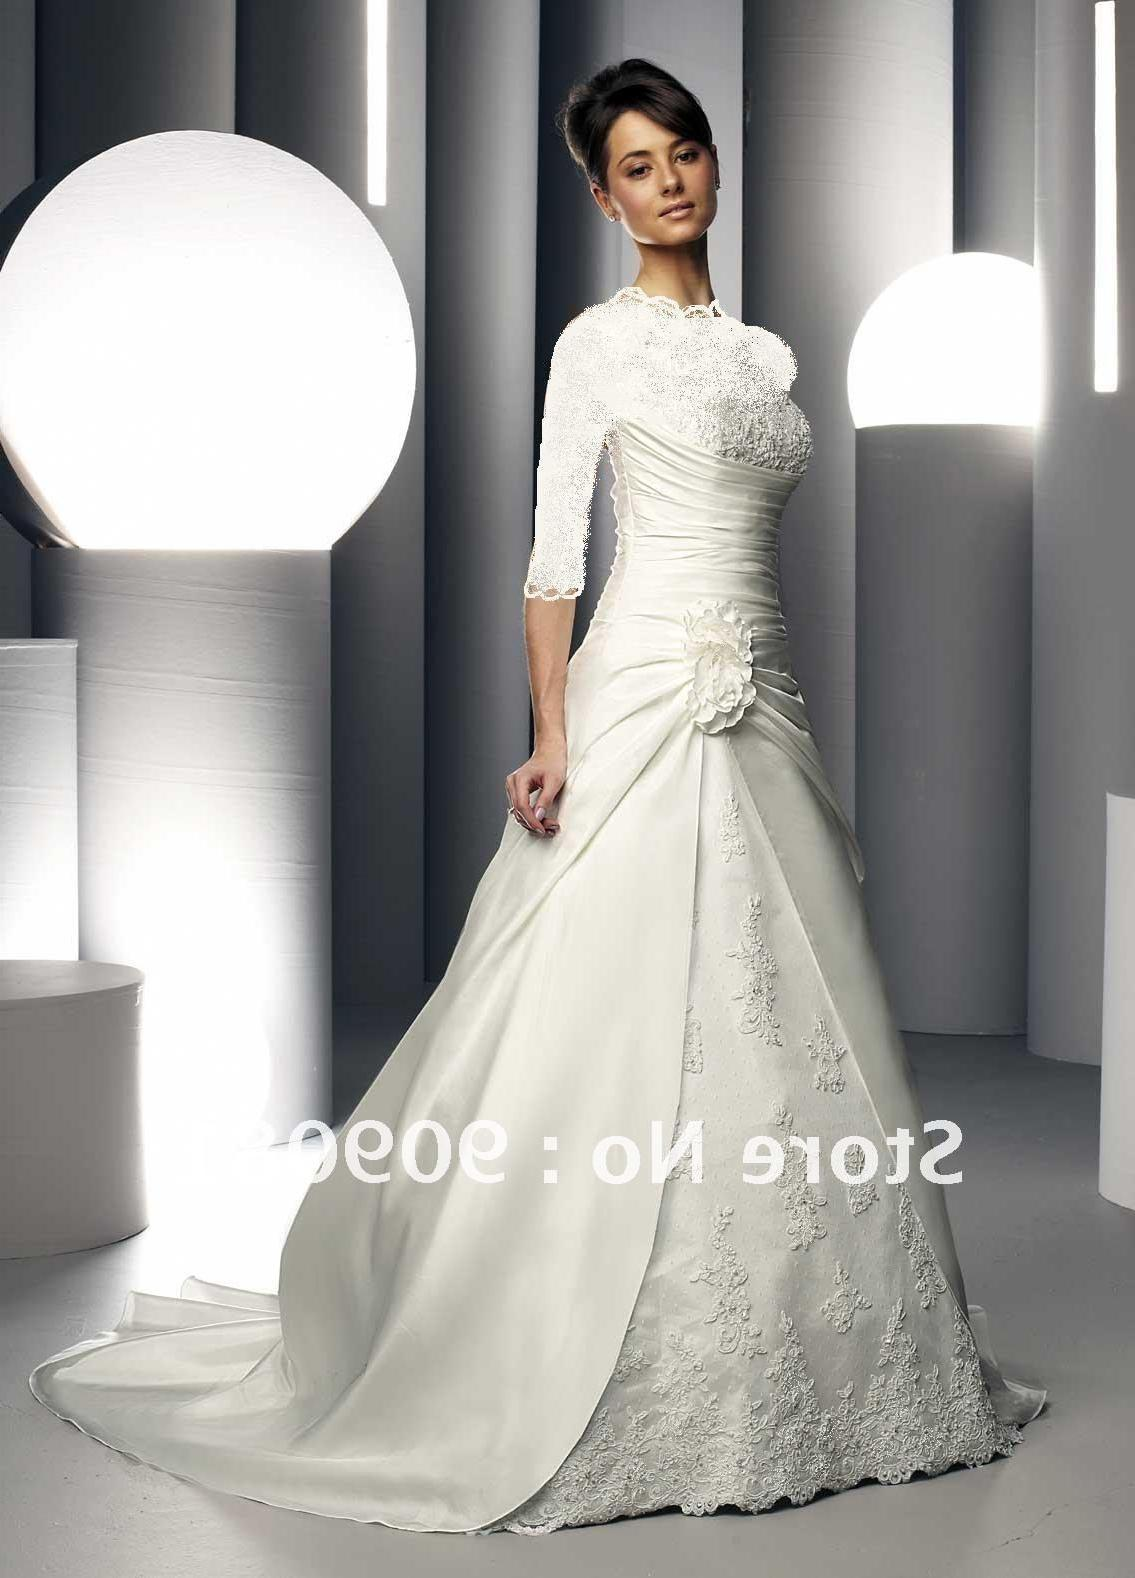 NL001 Illusion Long Lace Sleeve High Neck Satin and Lace Wedding Dress